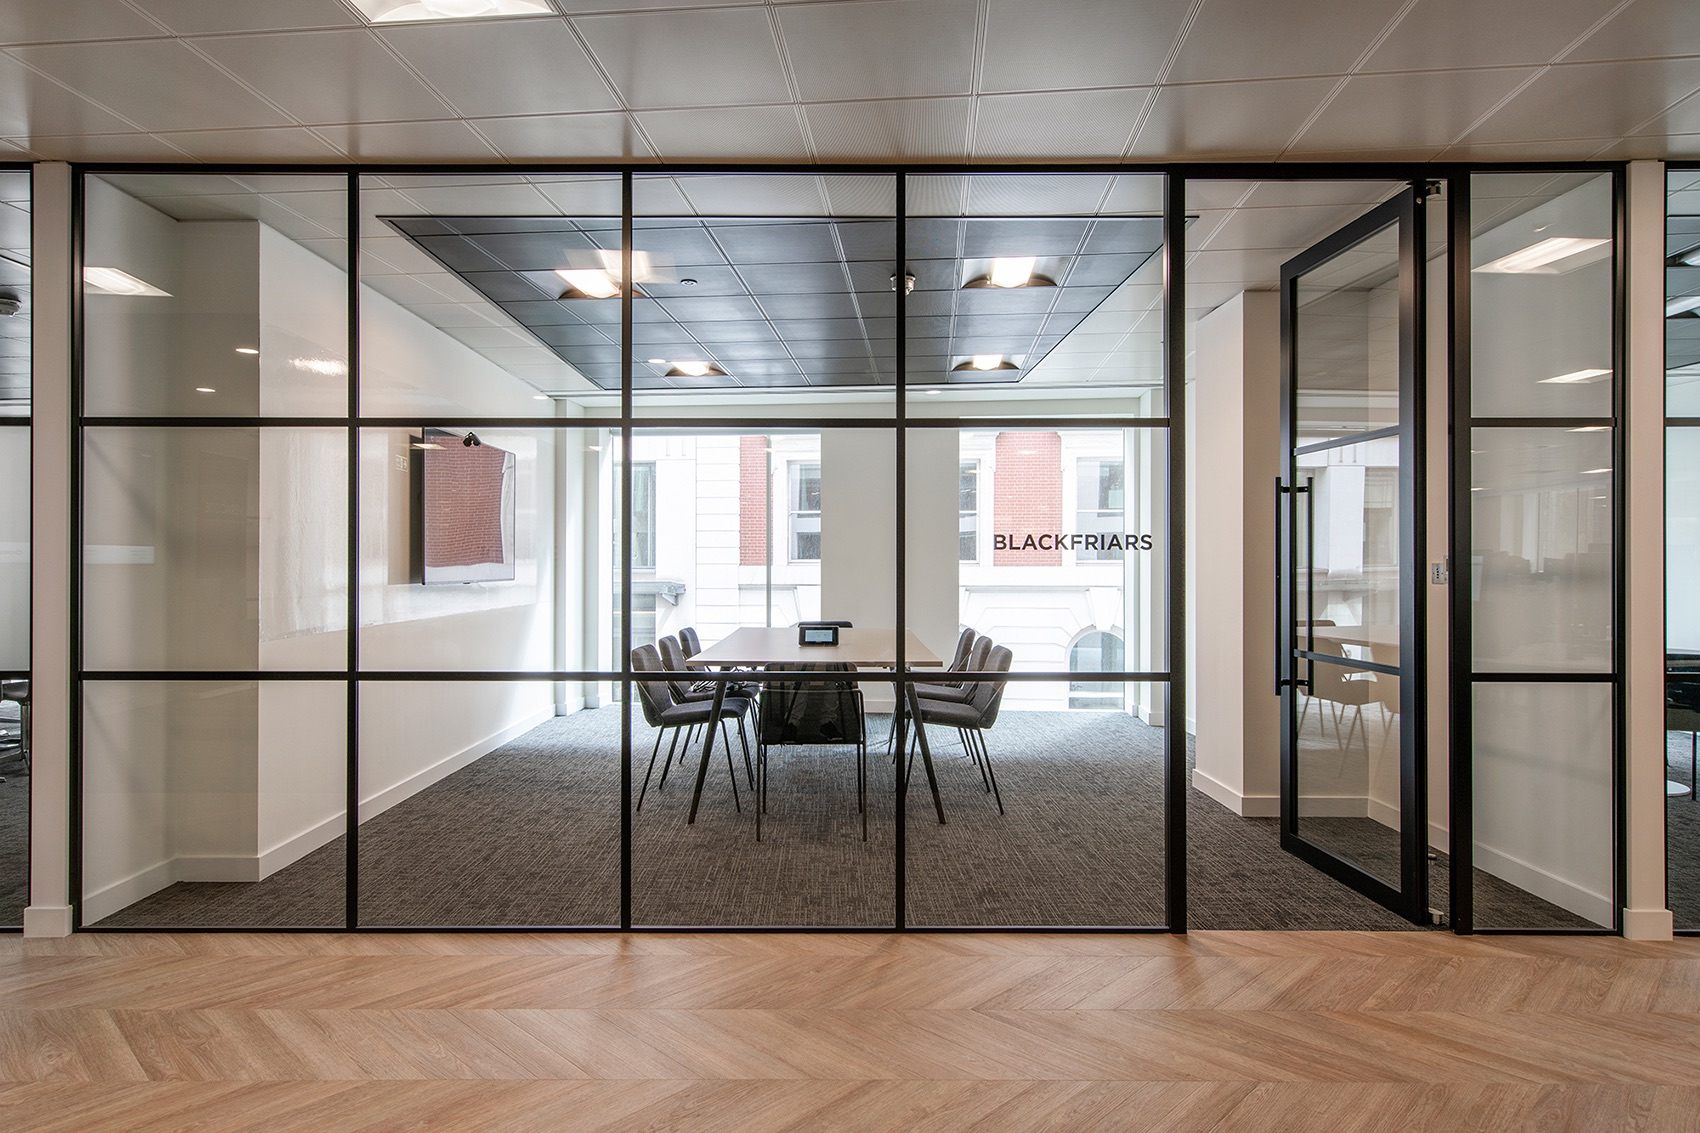 veracode-london-office-2